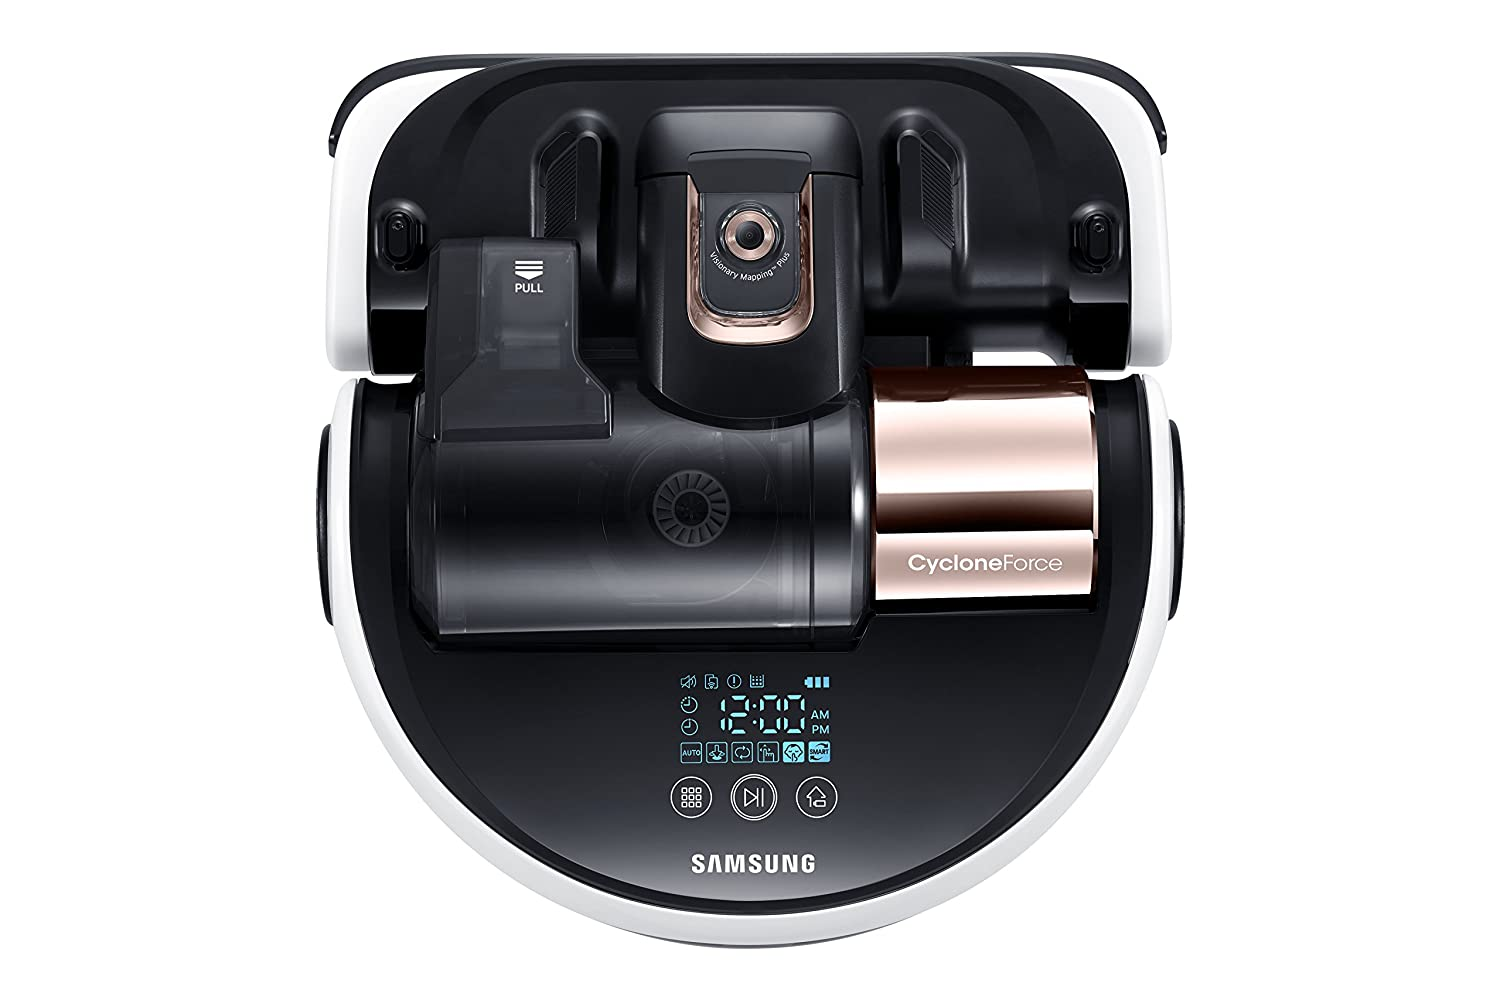 Samsung POWERbot (Airborne Copper) Black Friday Deal 2018